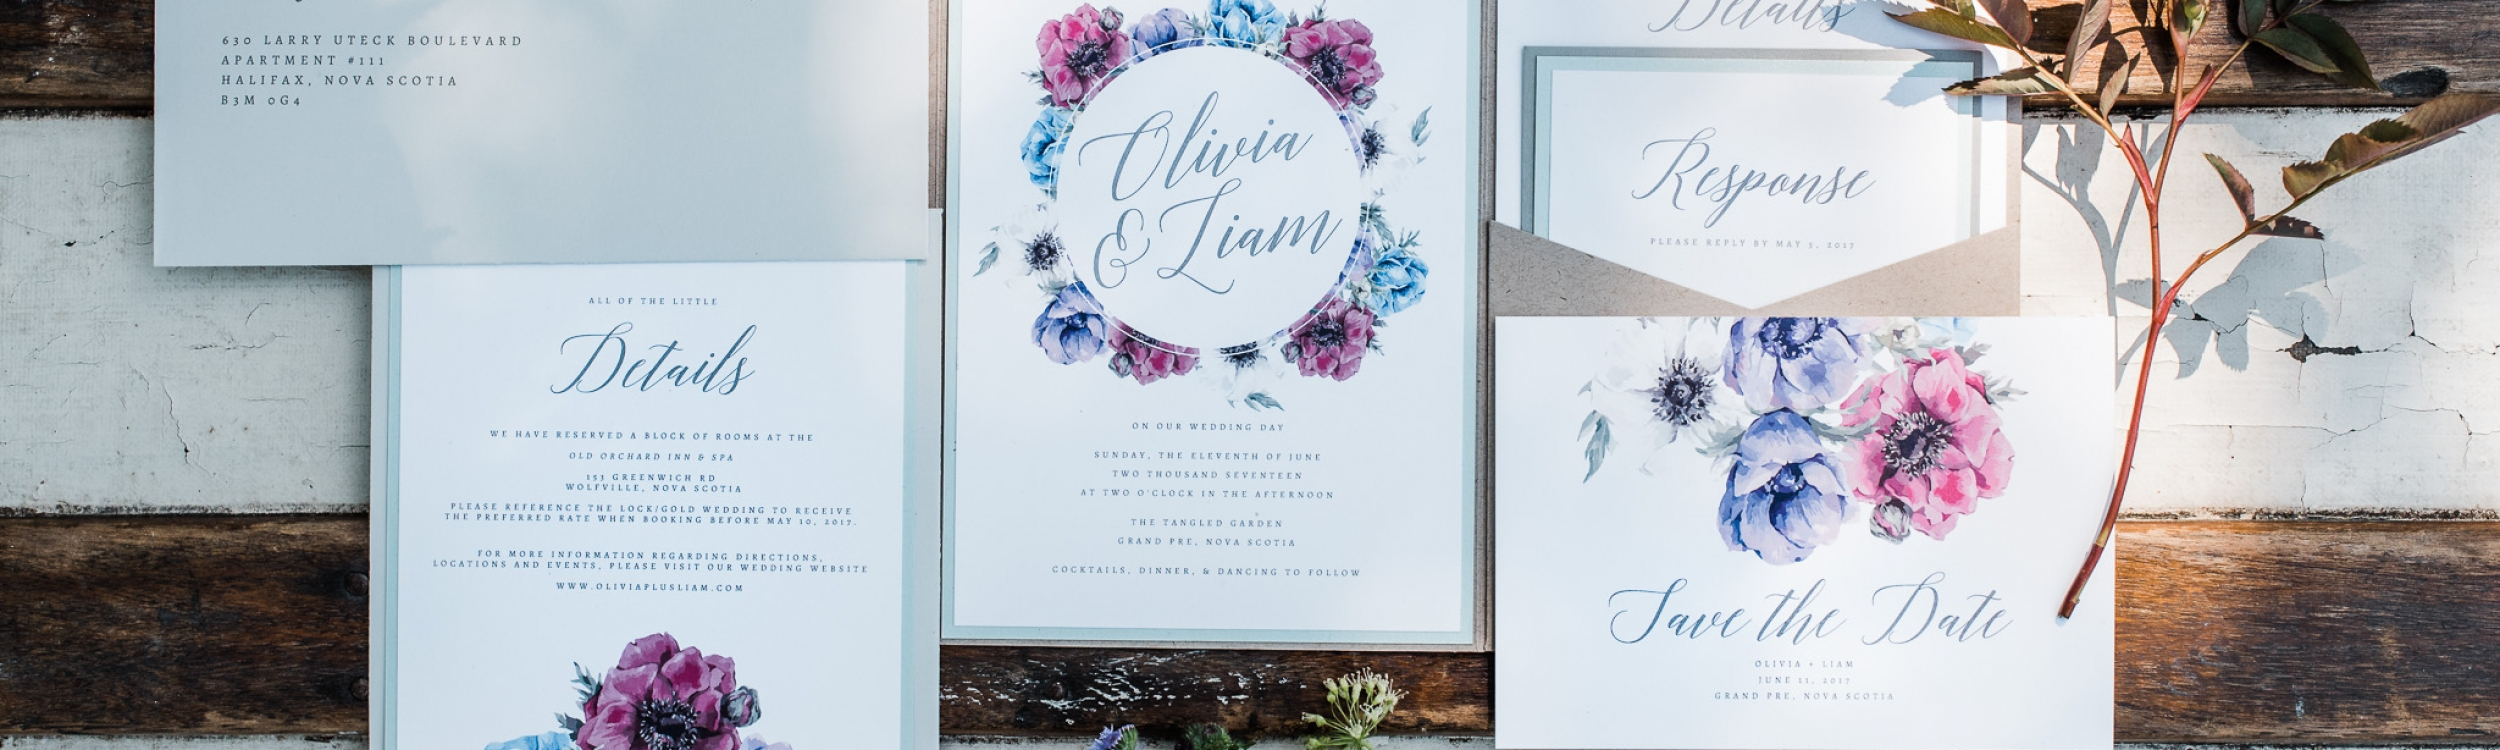 Wedding Invitations, Halifax Nova Scotia